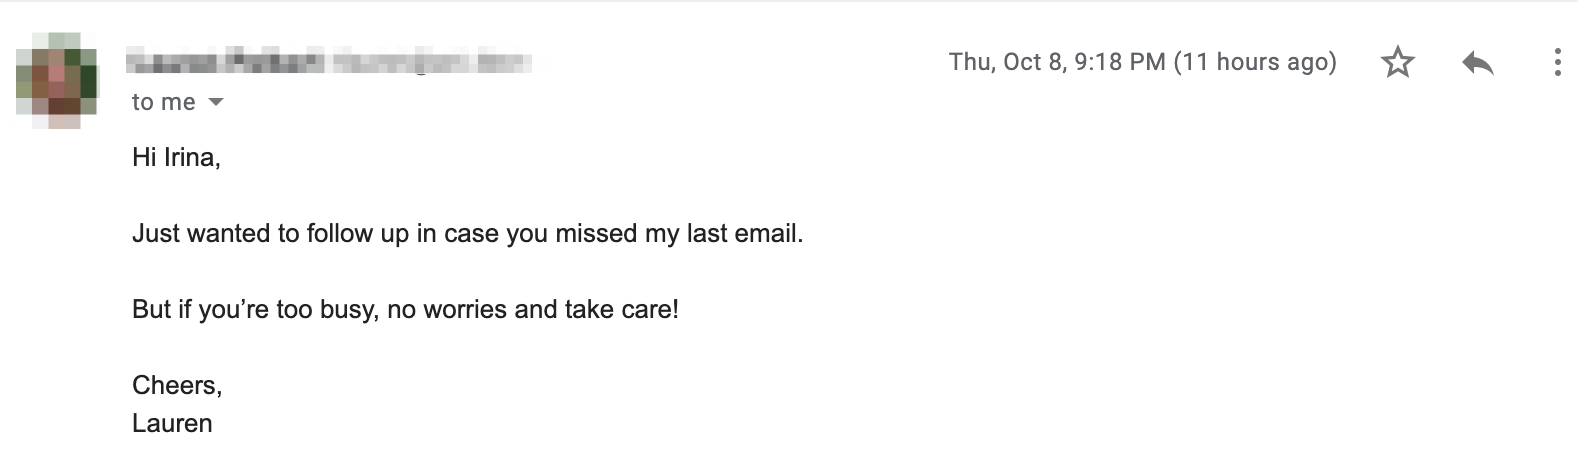 Follow-up email with no value